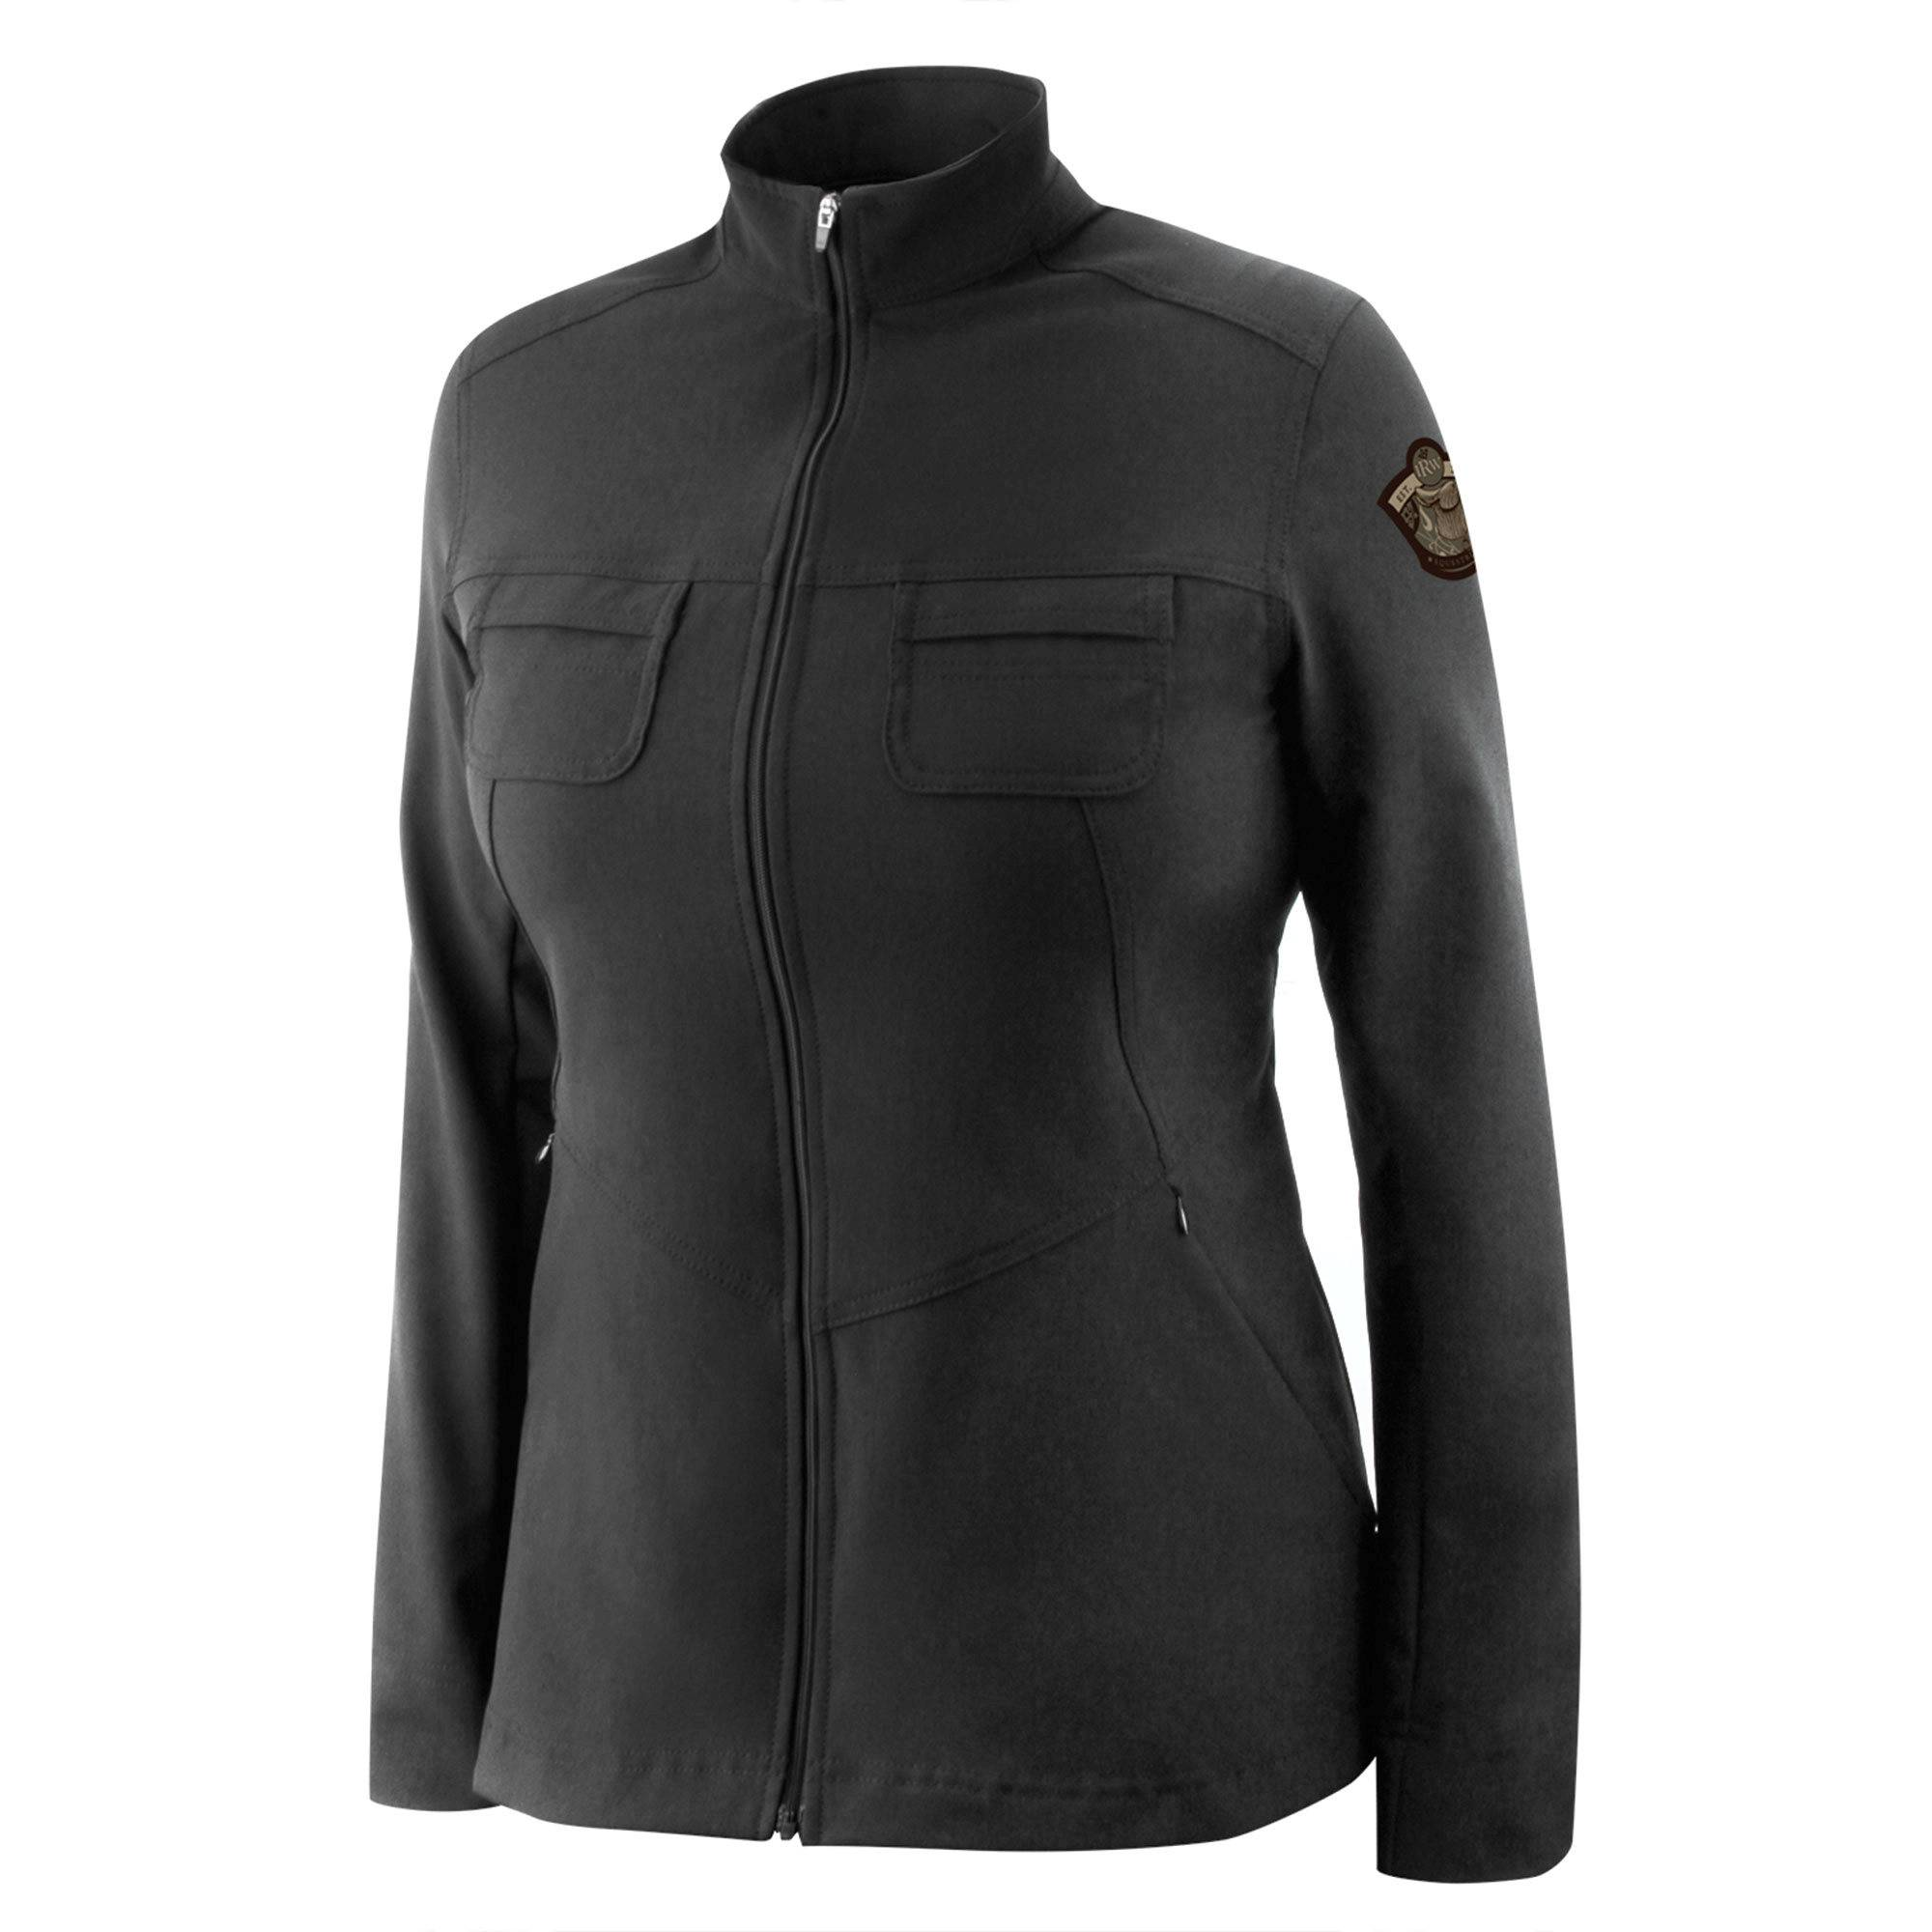 Irideon Cavalry Jacket - Ladies